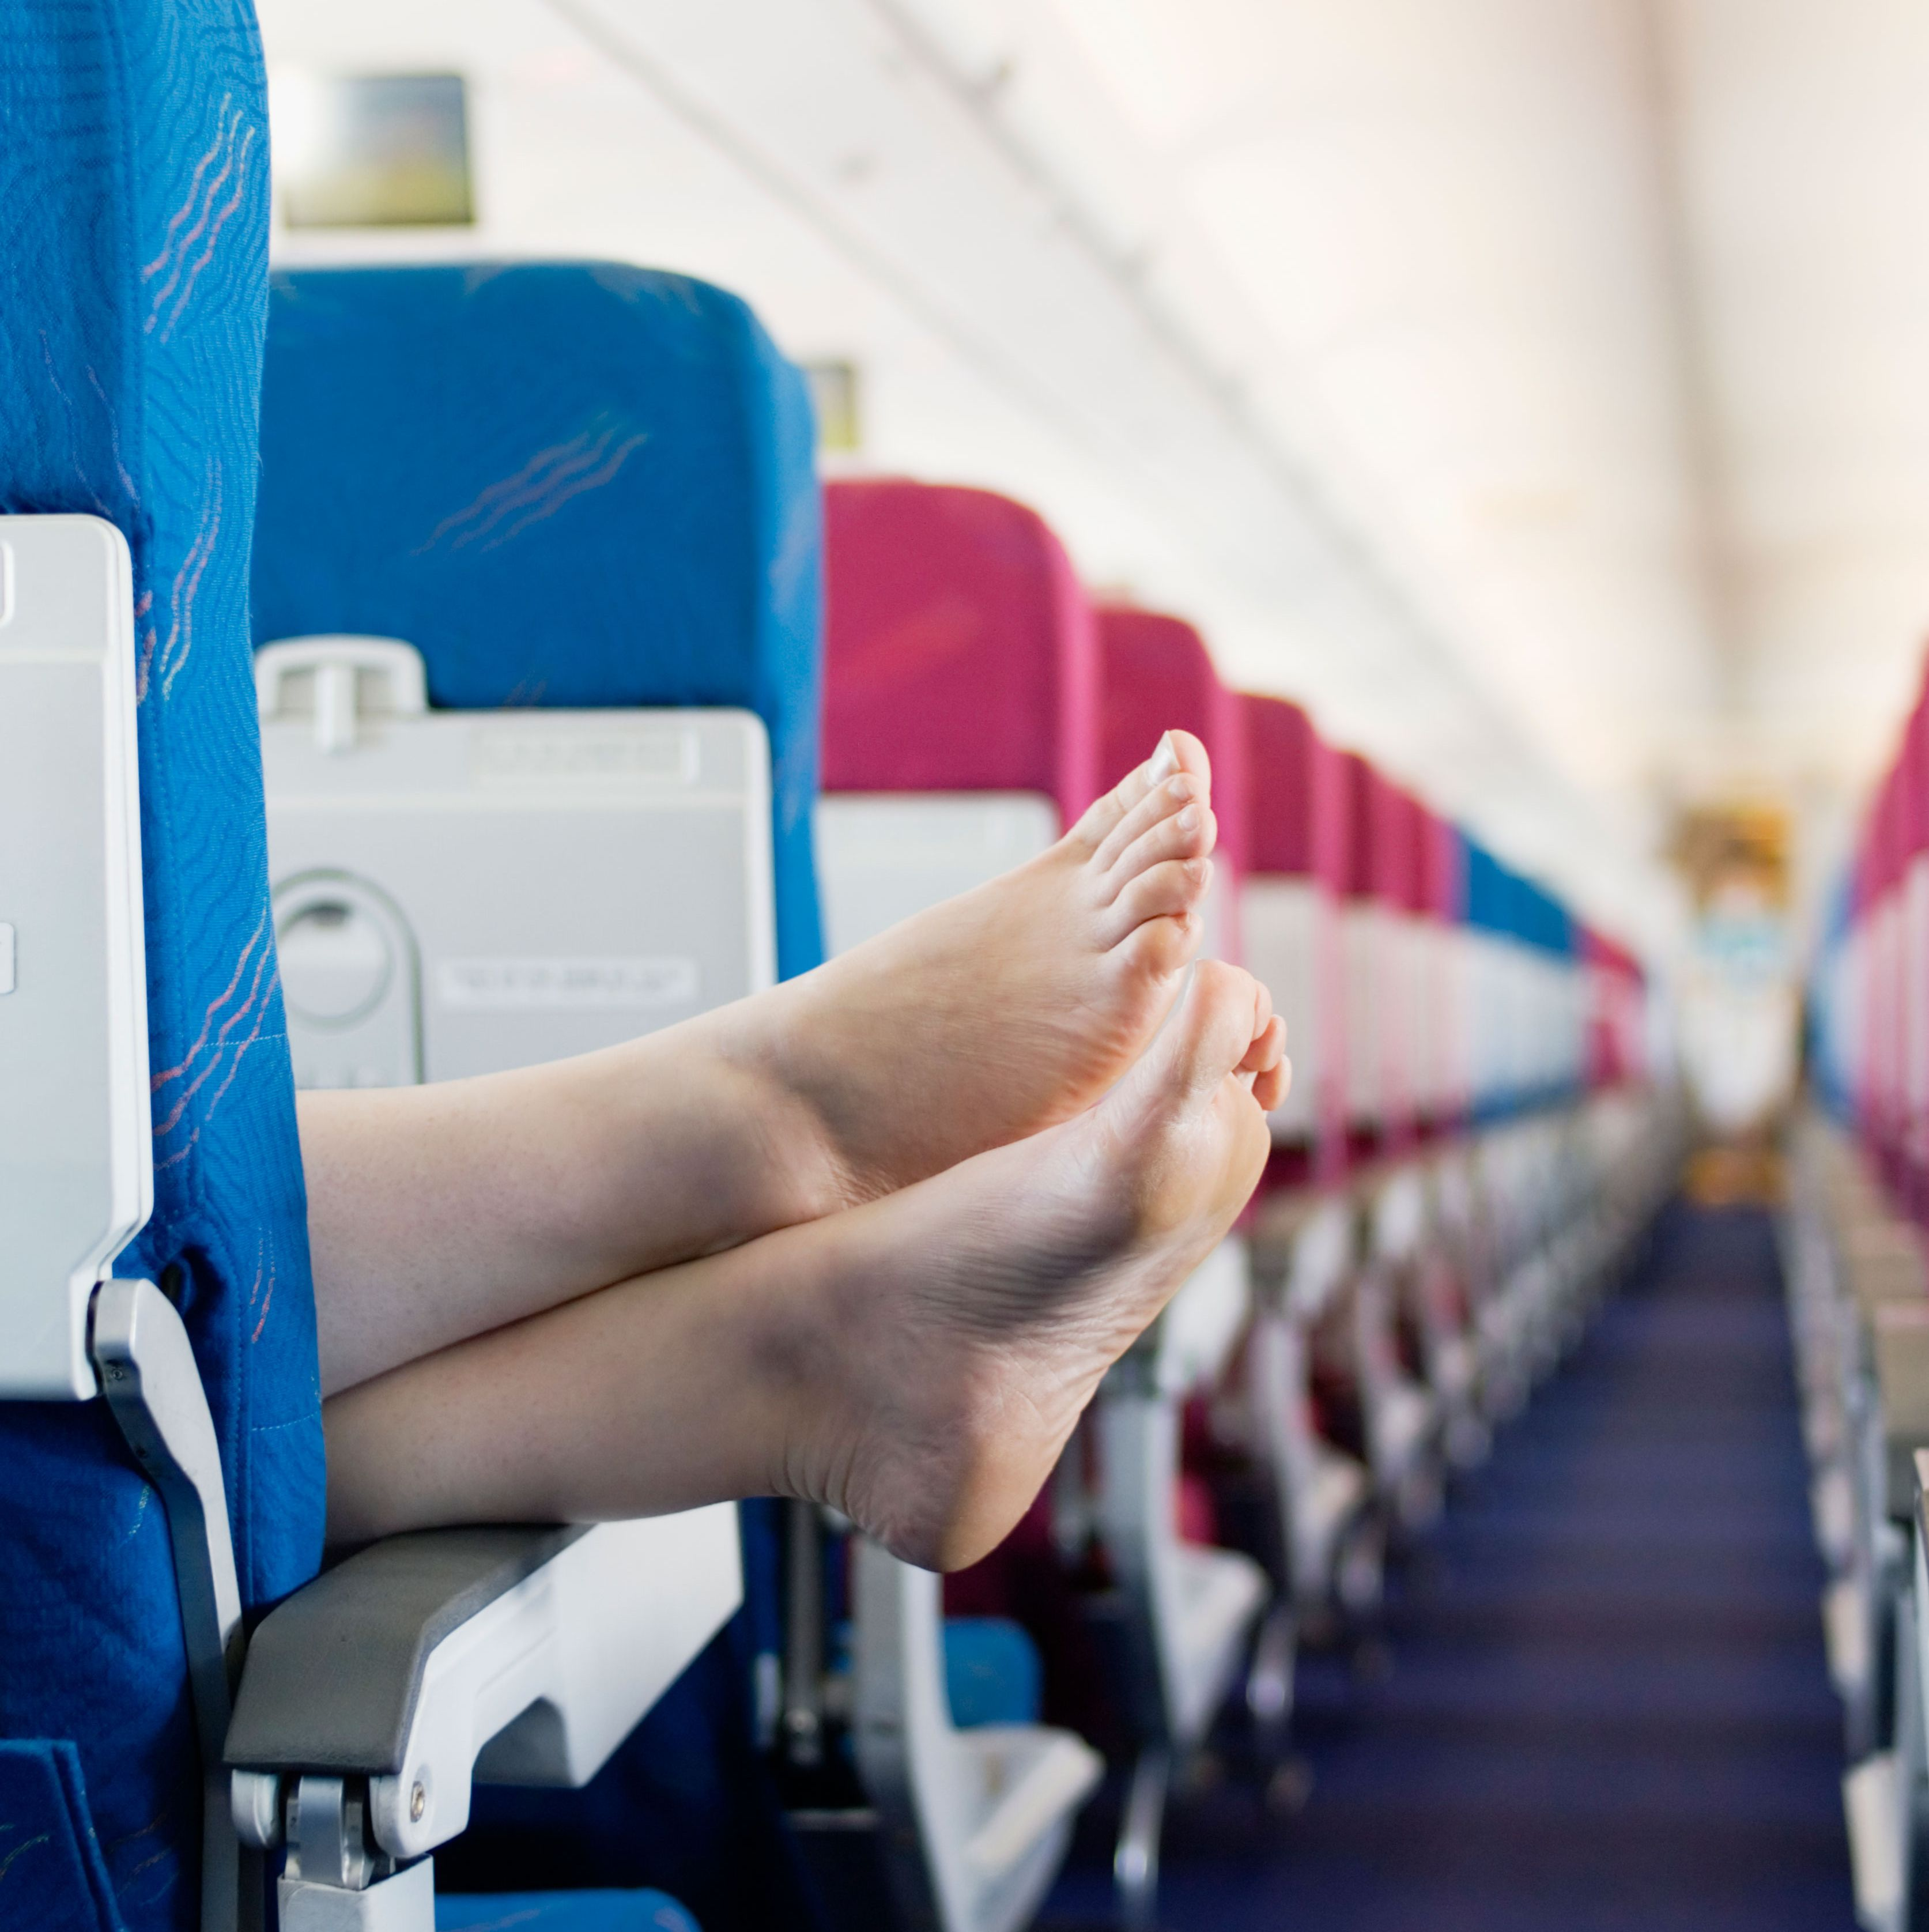 Please Keep Your Stinky Feet Off My Airplane Seat